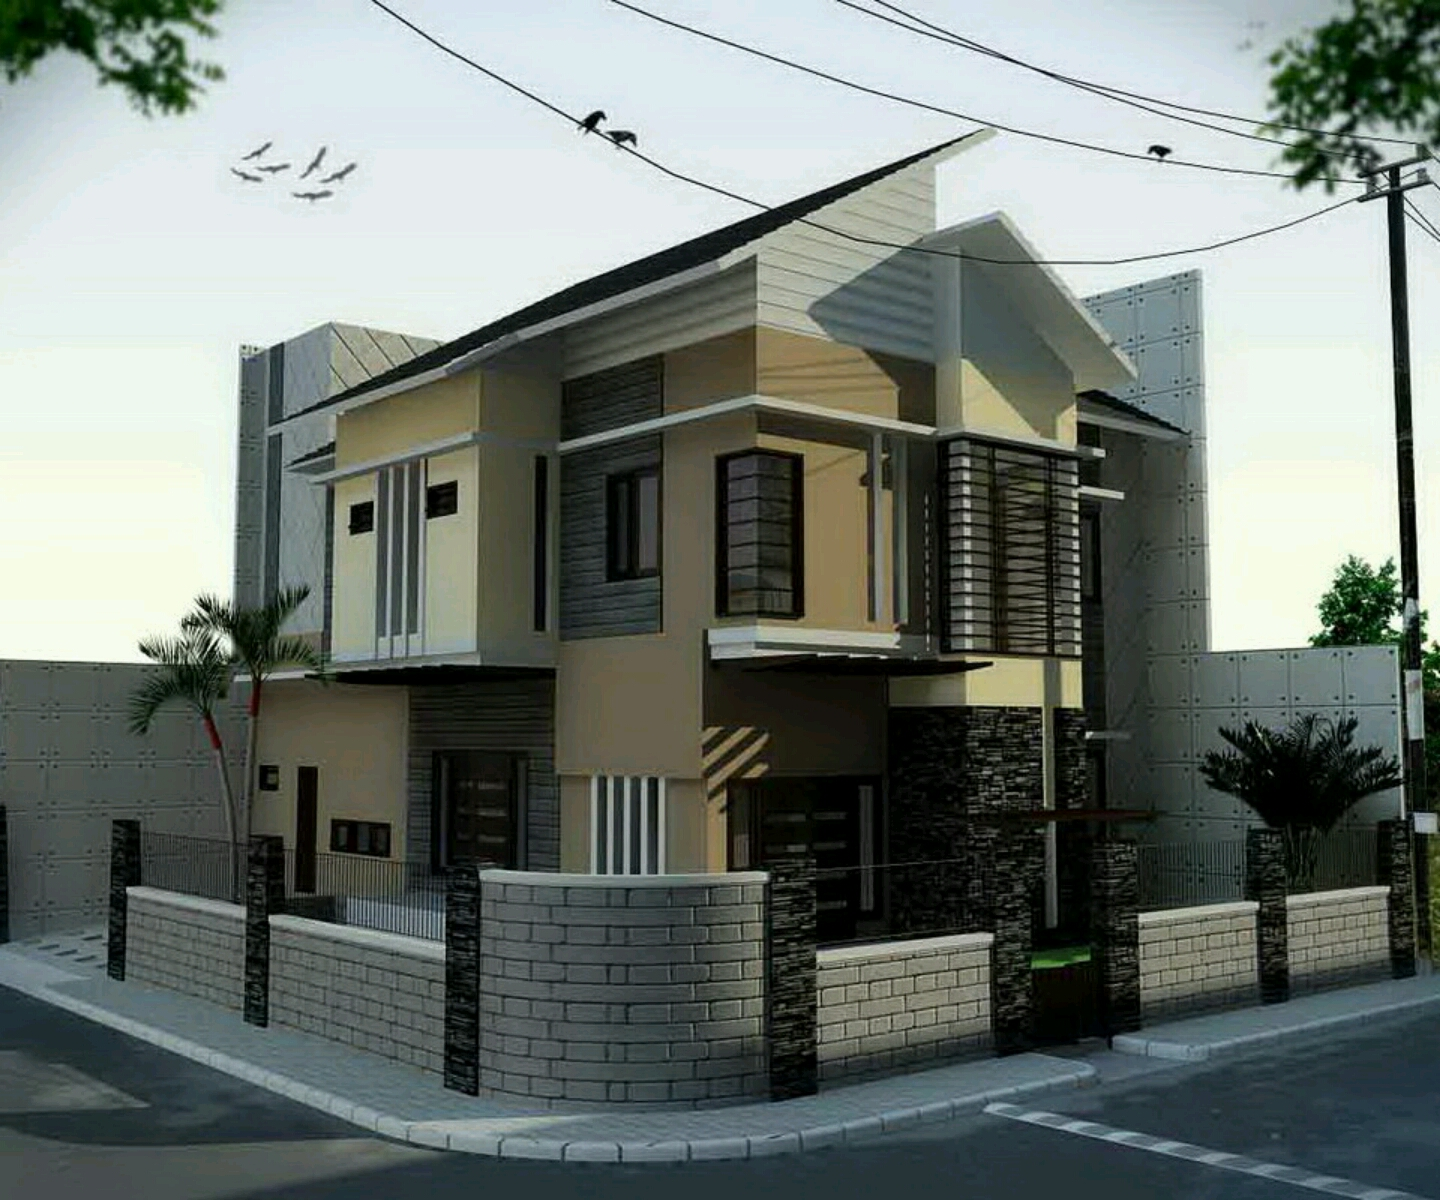 New home designs latest modern homes designs front views for New home designs